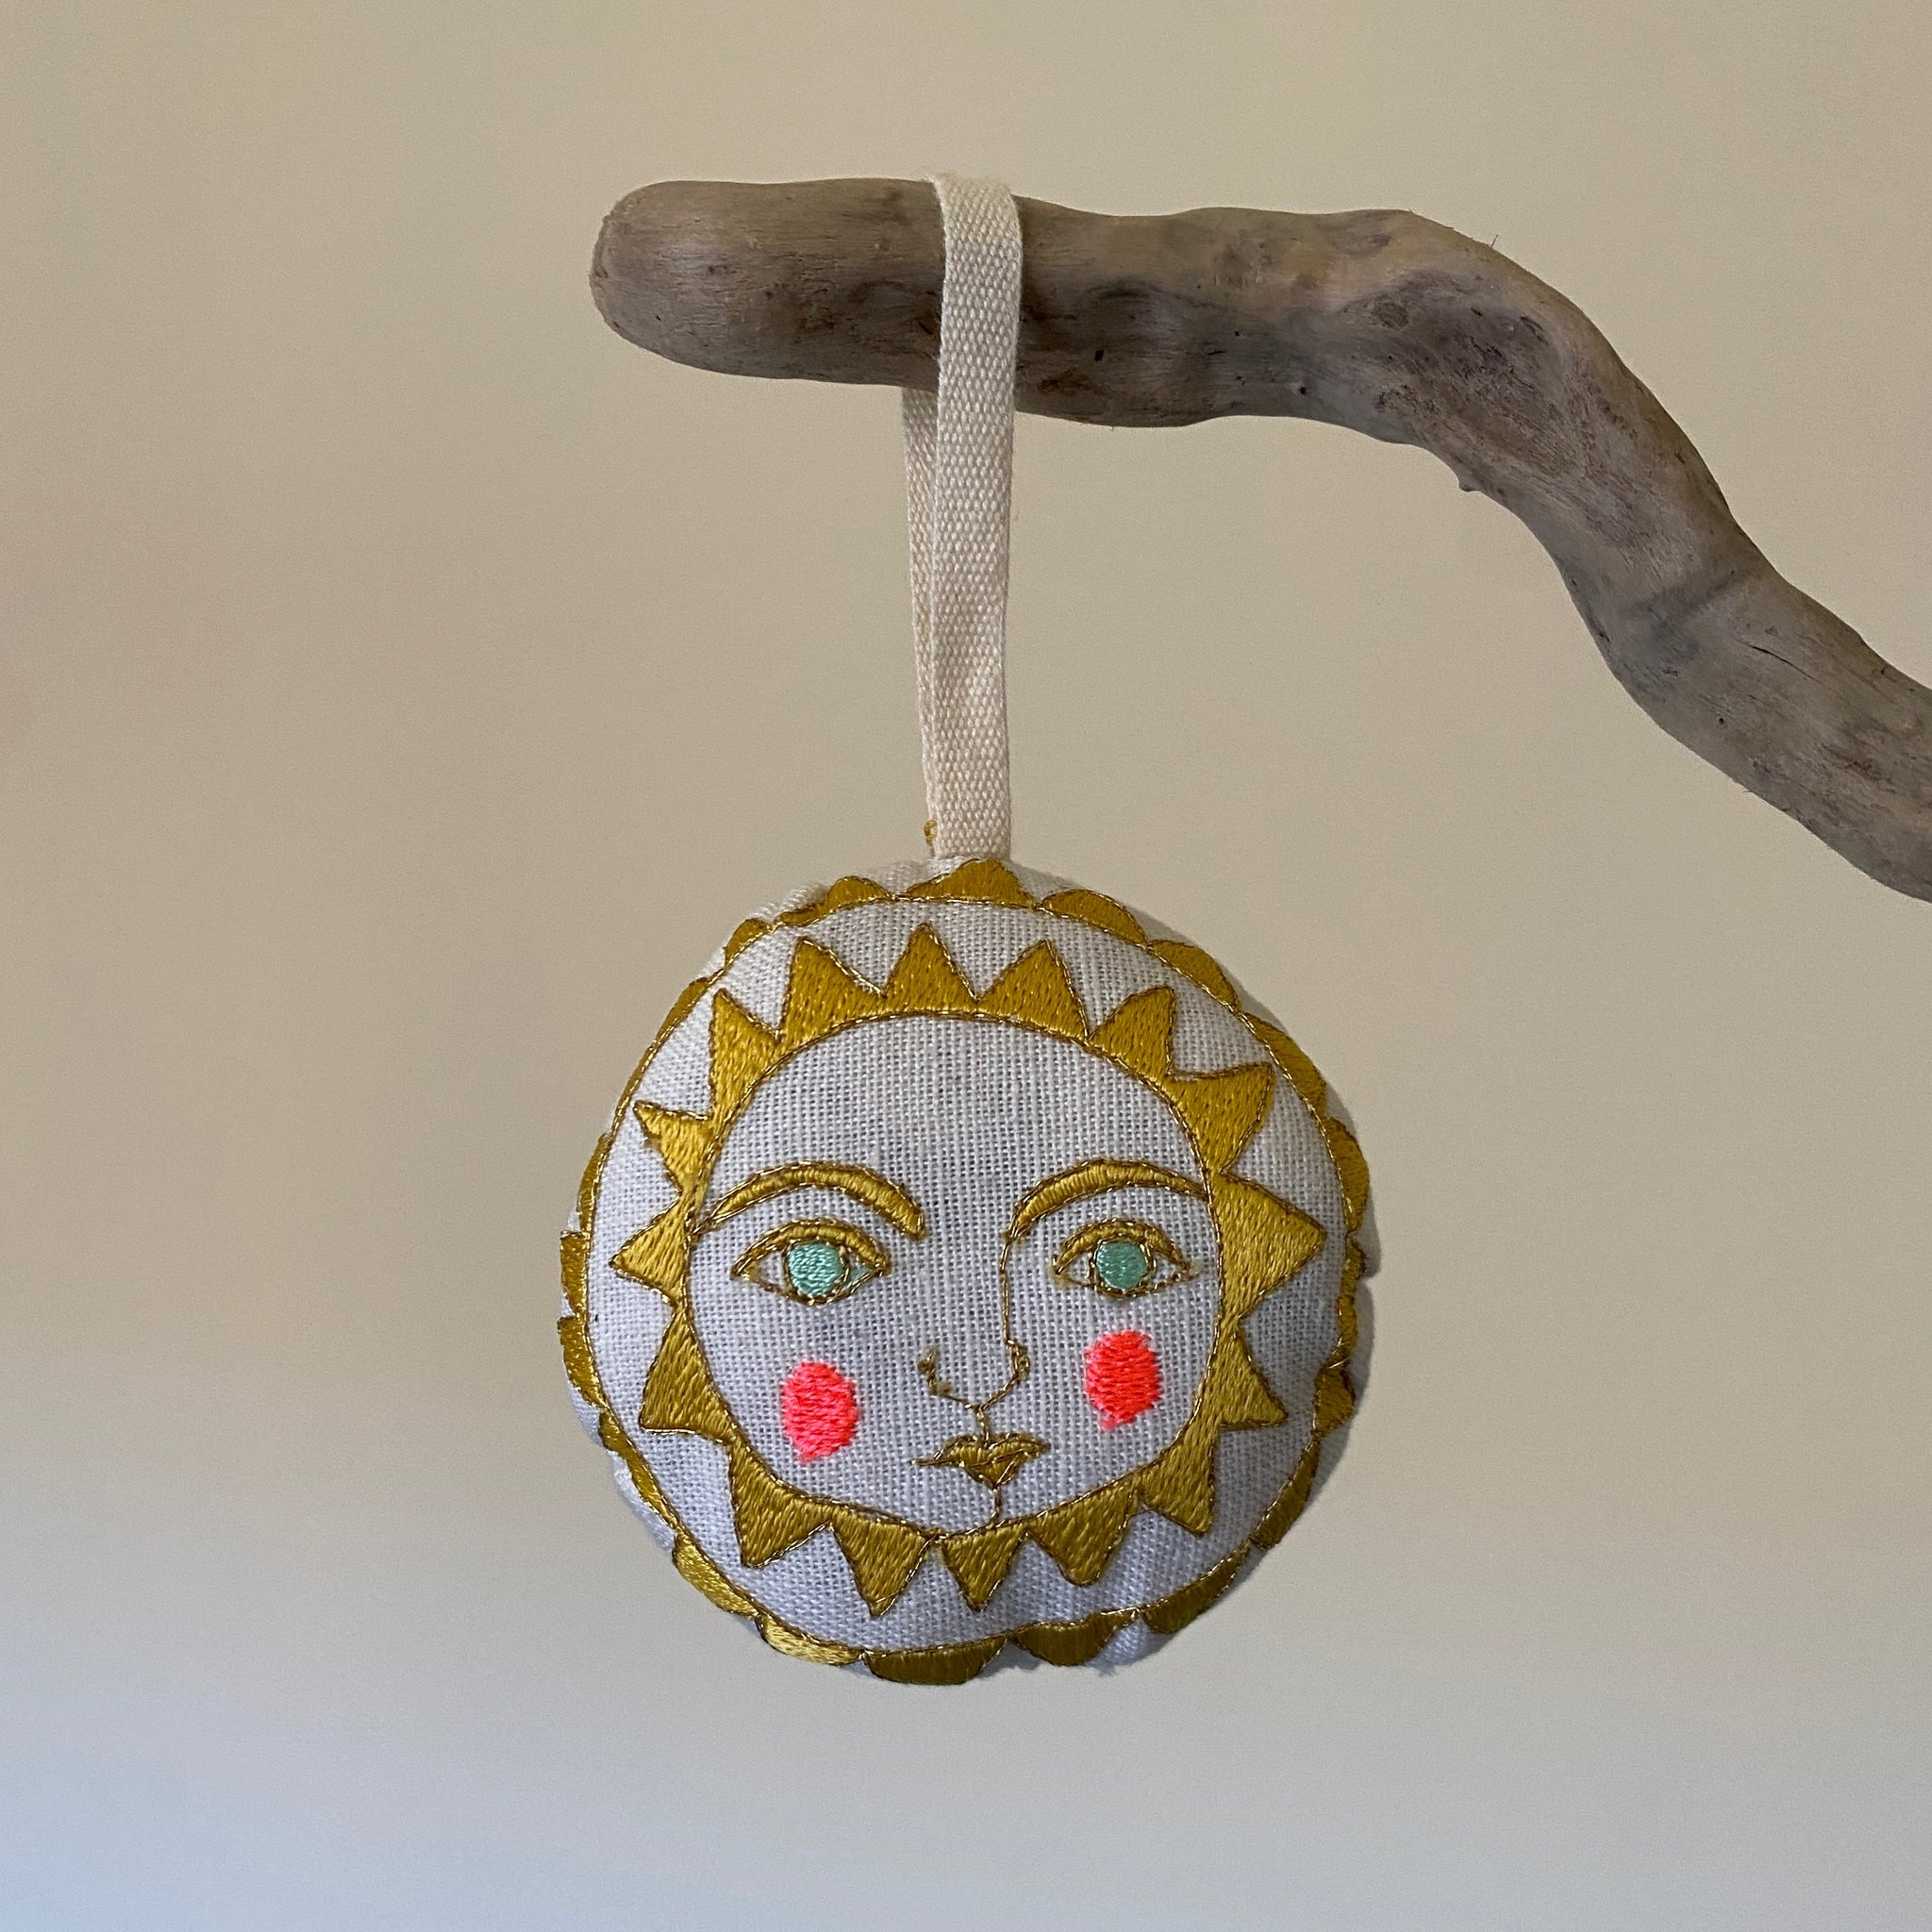 SKIPPY COTTON || HAND SEWN ORNAMENT